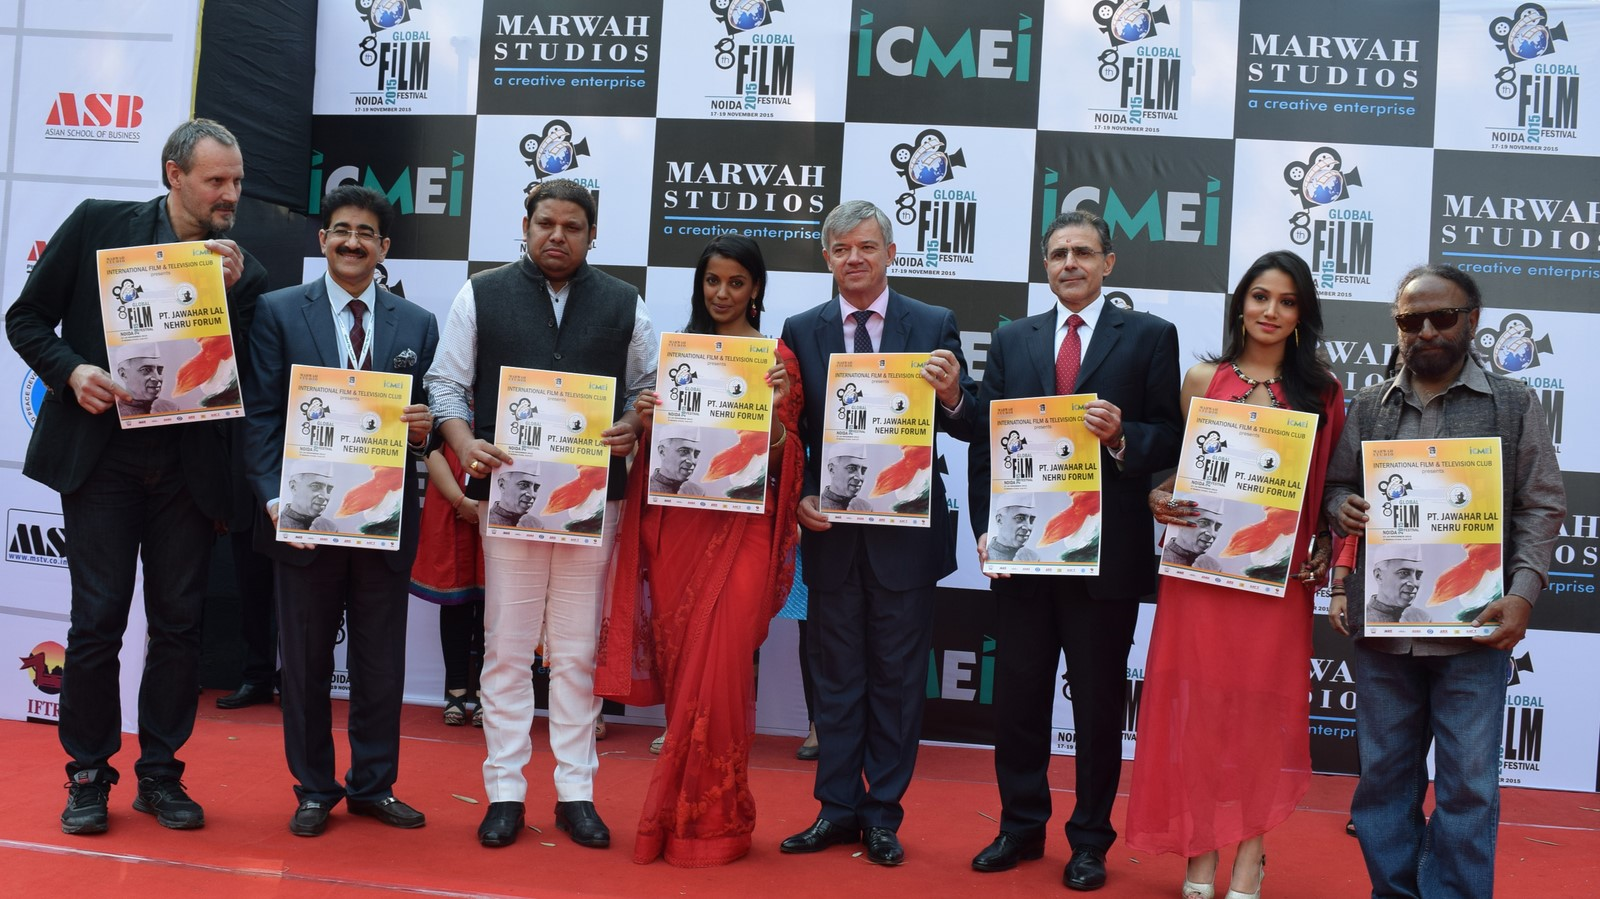 Poster of Pt. Jawaharlal Nehru Forum Released at 8th GFFN